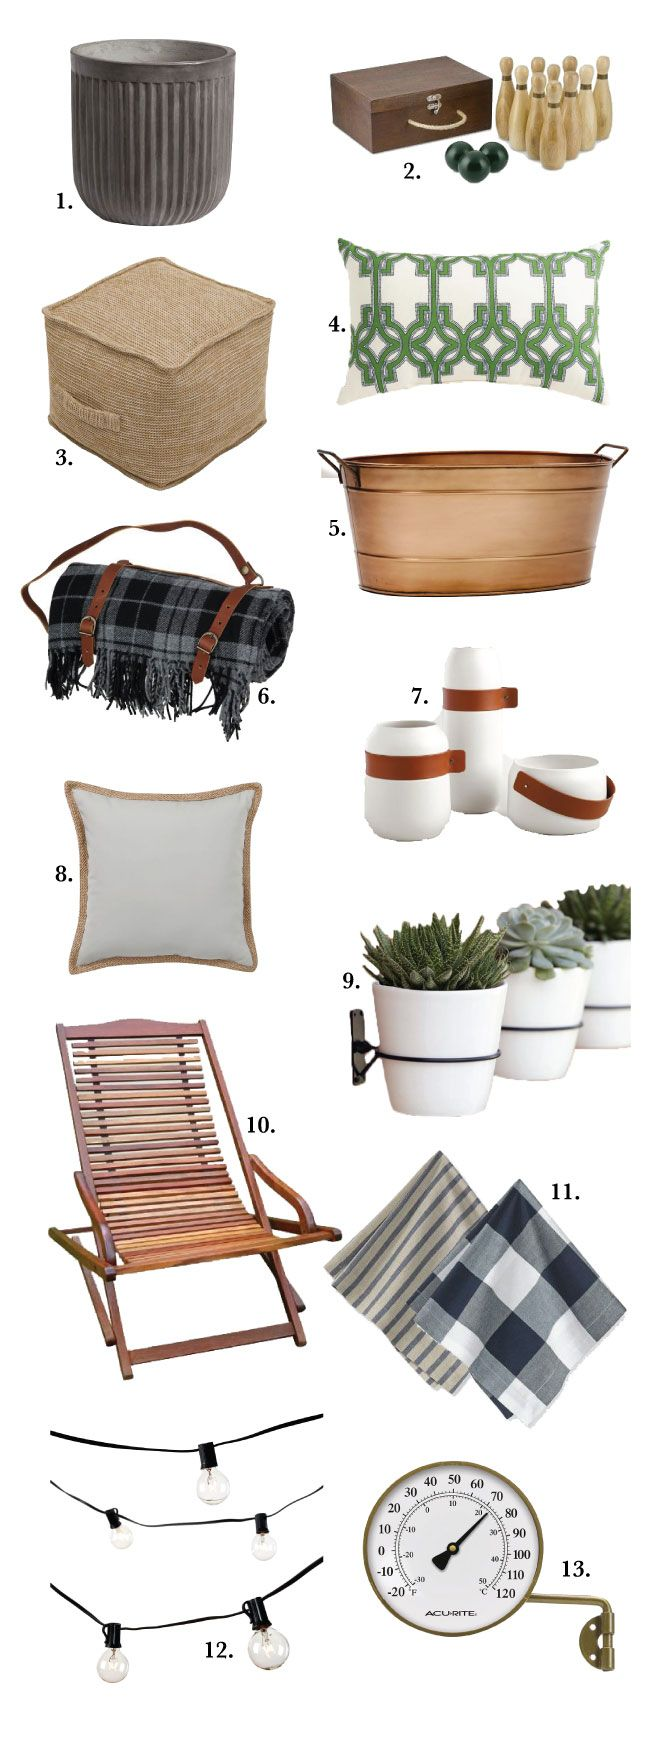 13 Things To Add to Your Outdoor Space this Summer | Chris Loves Julia